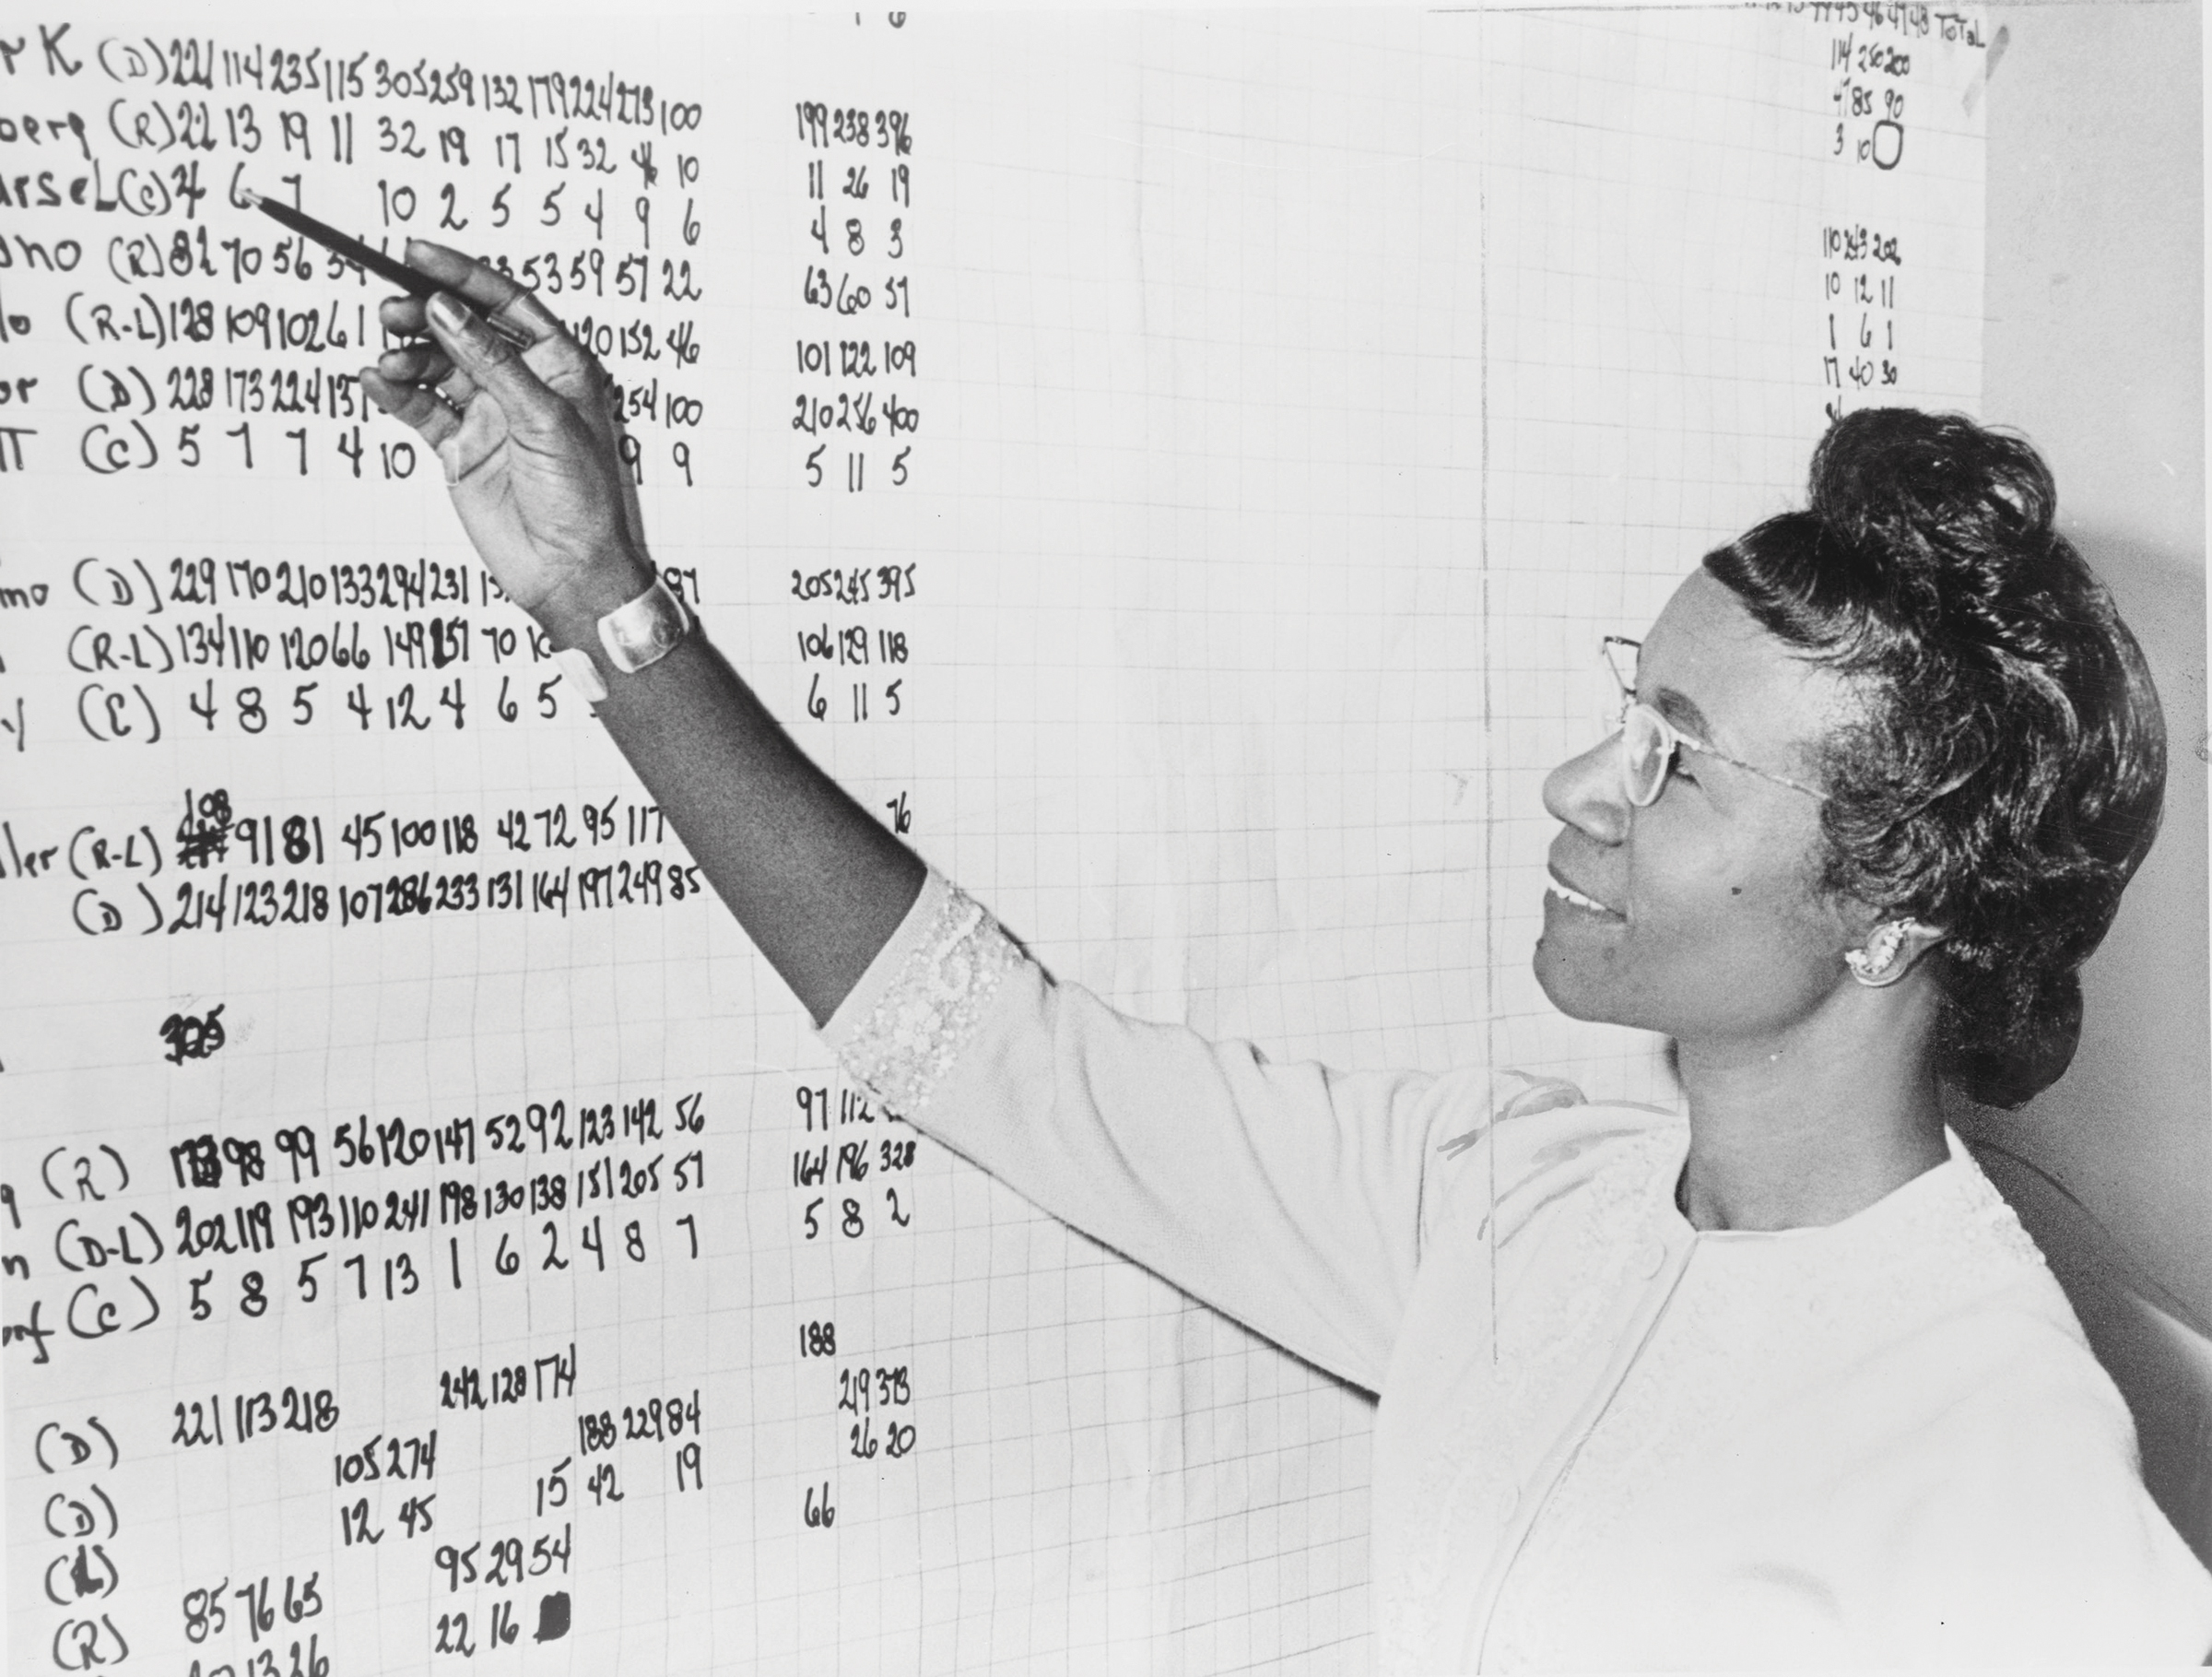 Shirley Chisholm, Congresswoman from New York, looking at list of numbers posted on a wall, 2 November 1965, Library of Congress. (New York World-Telegram & Sun Collection. Roger Higgins, World Telegram staff photographer)